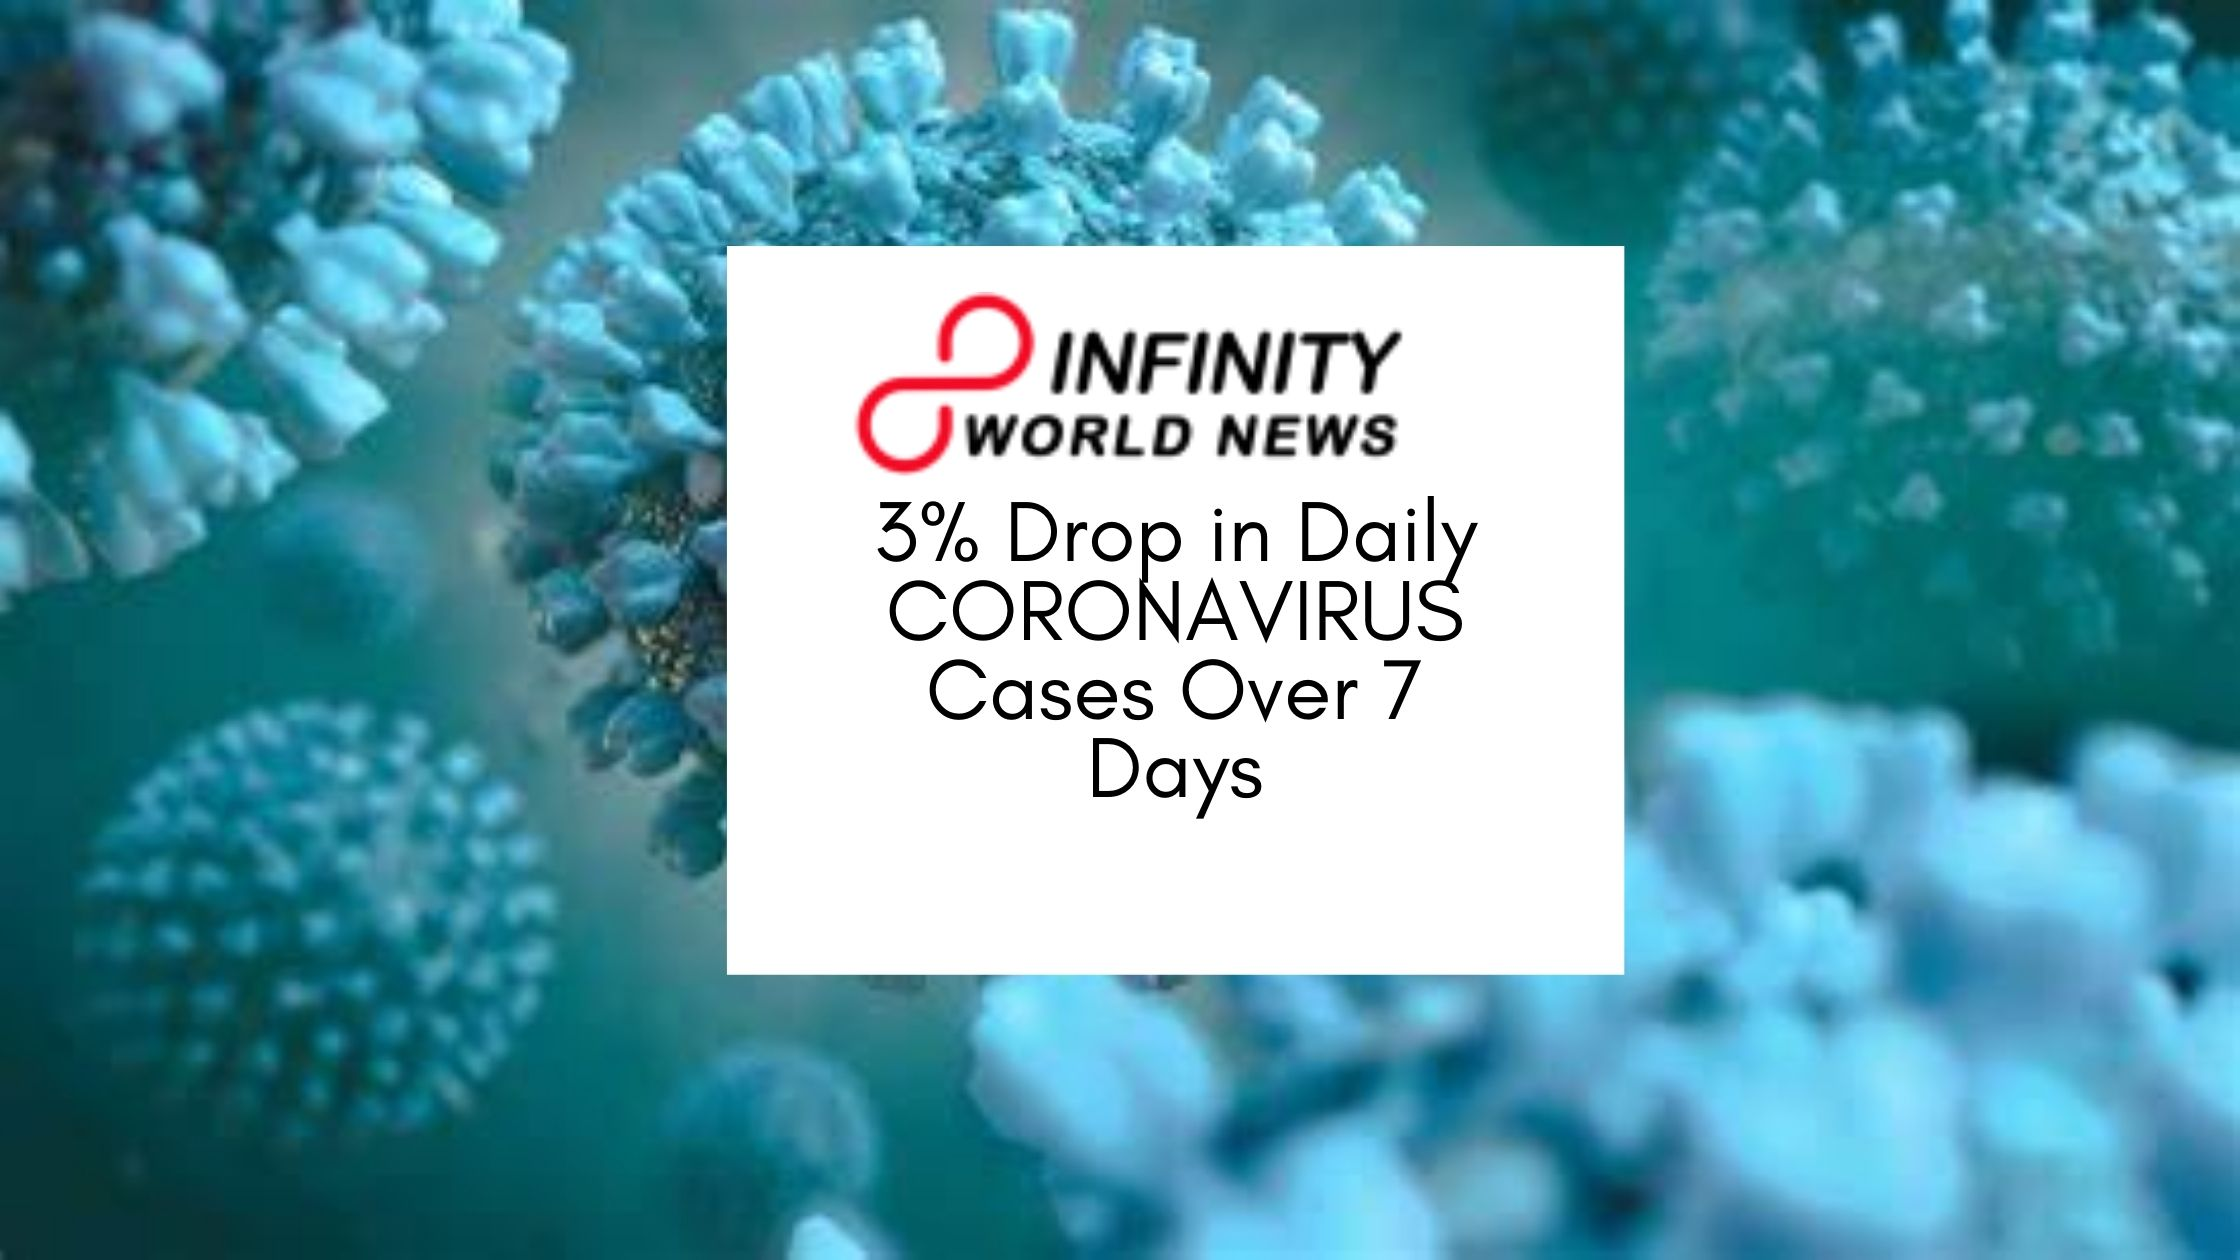 3% Drop in Daily CORONAVIRUS Cases Over 7 Days